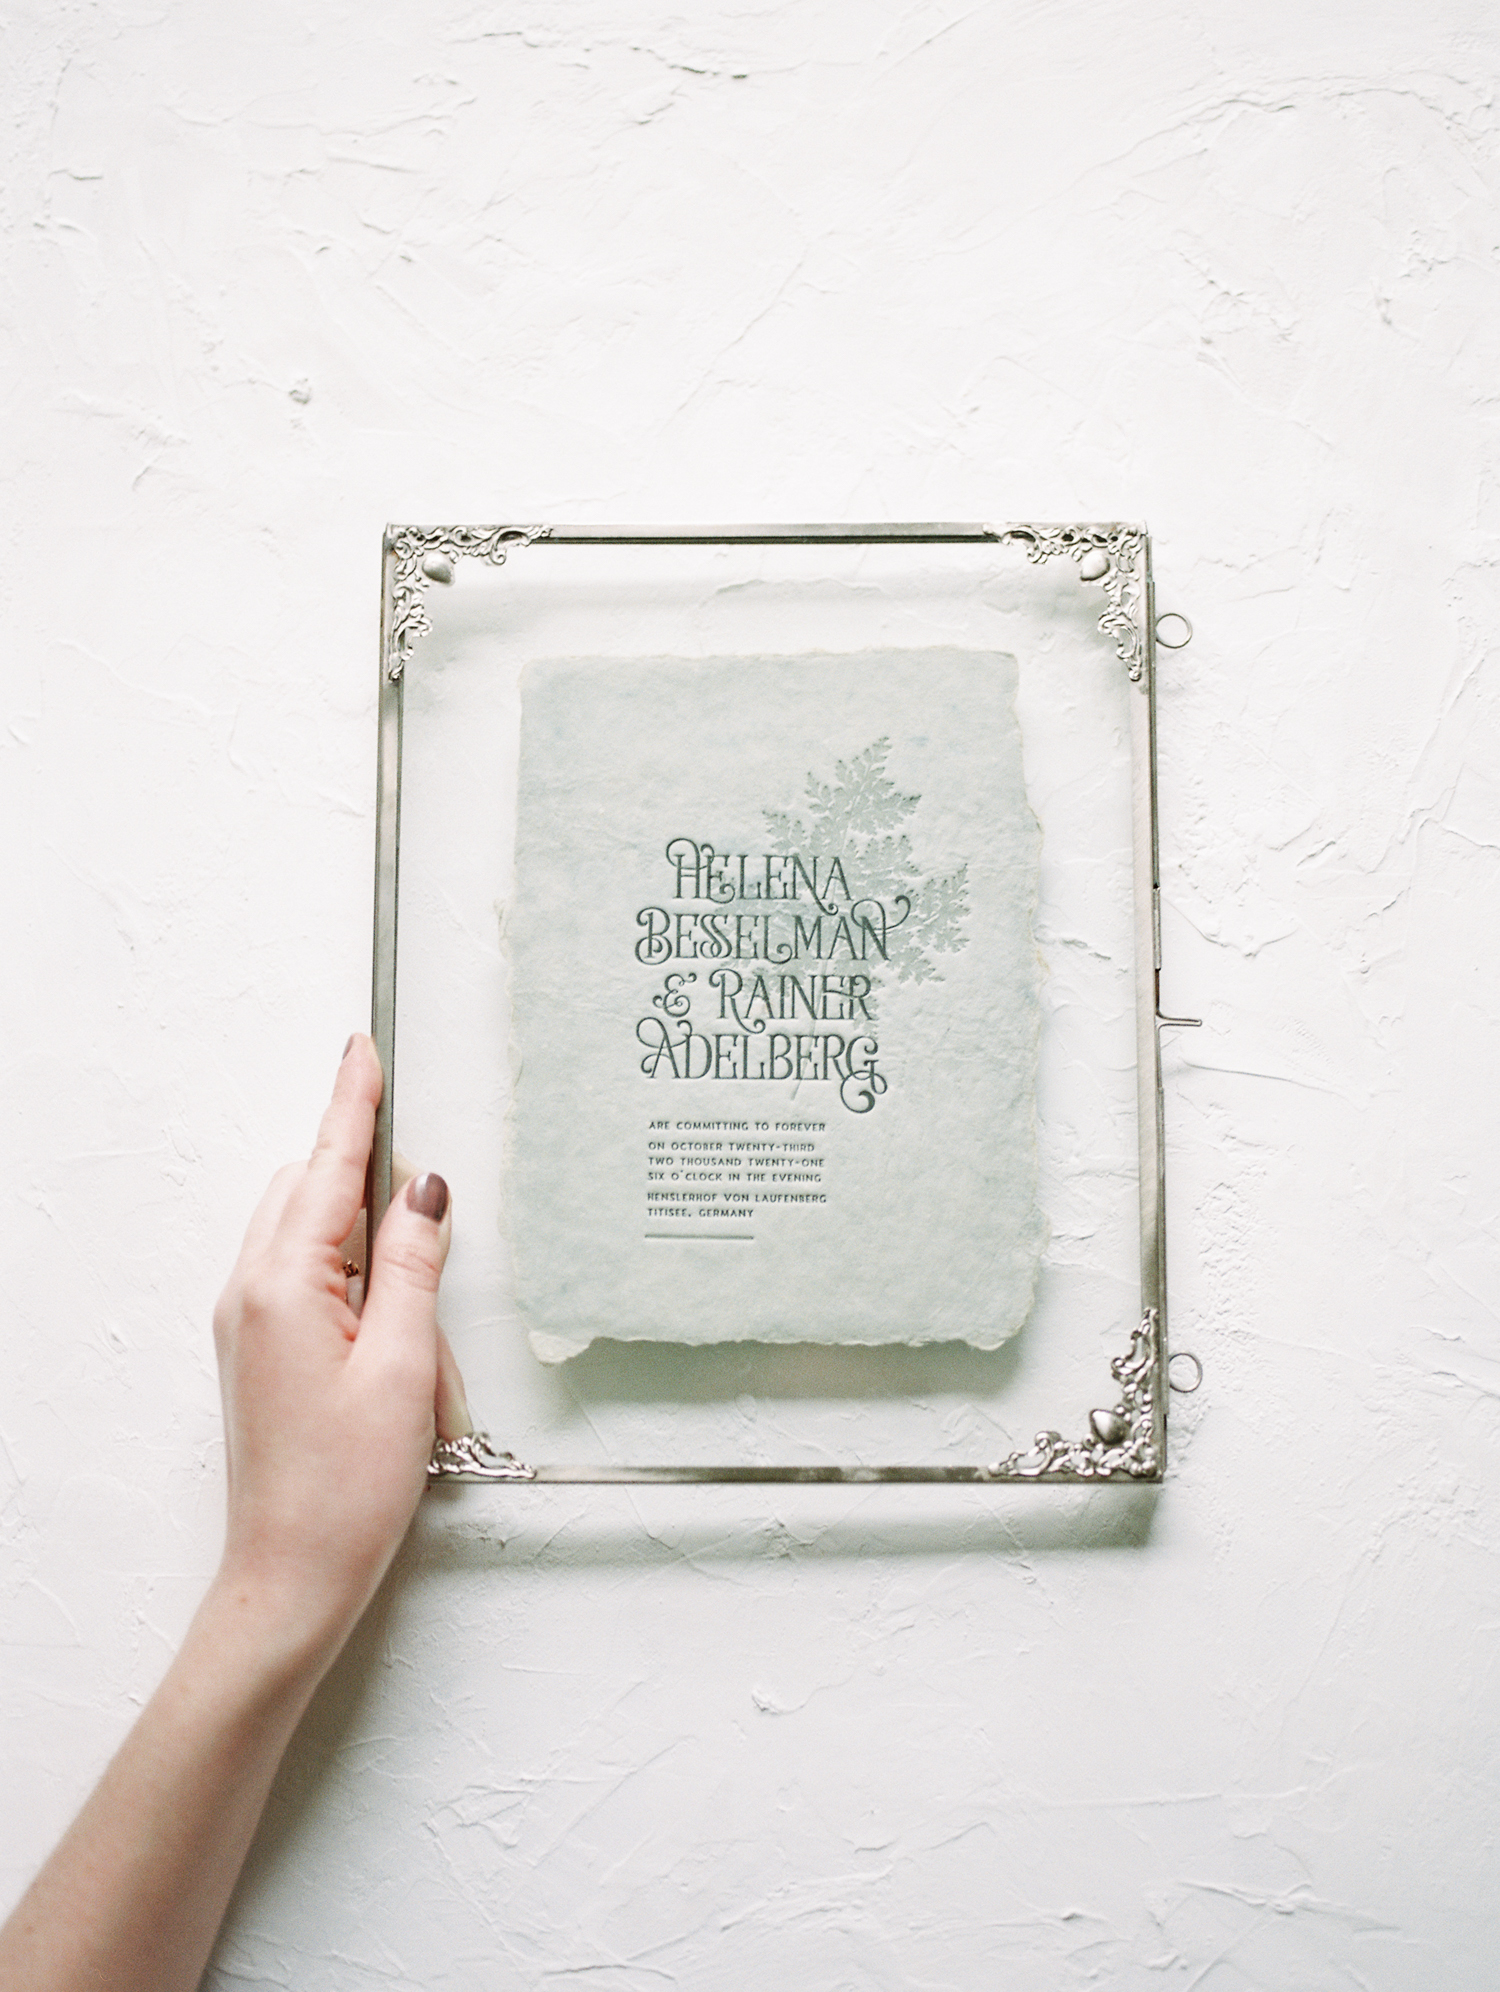 A handmade paper and custom letterpress wedding invitation rests in a glass frame near Detroit, Michigan